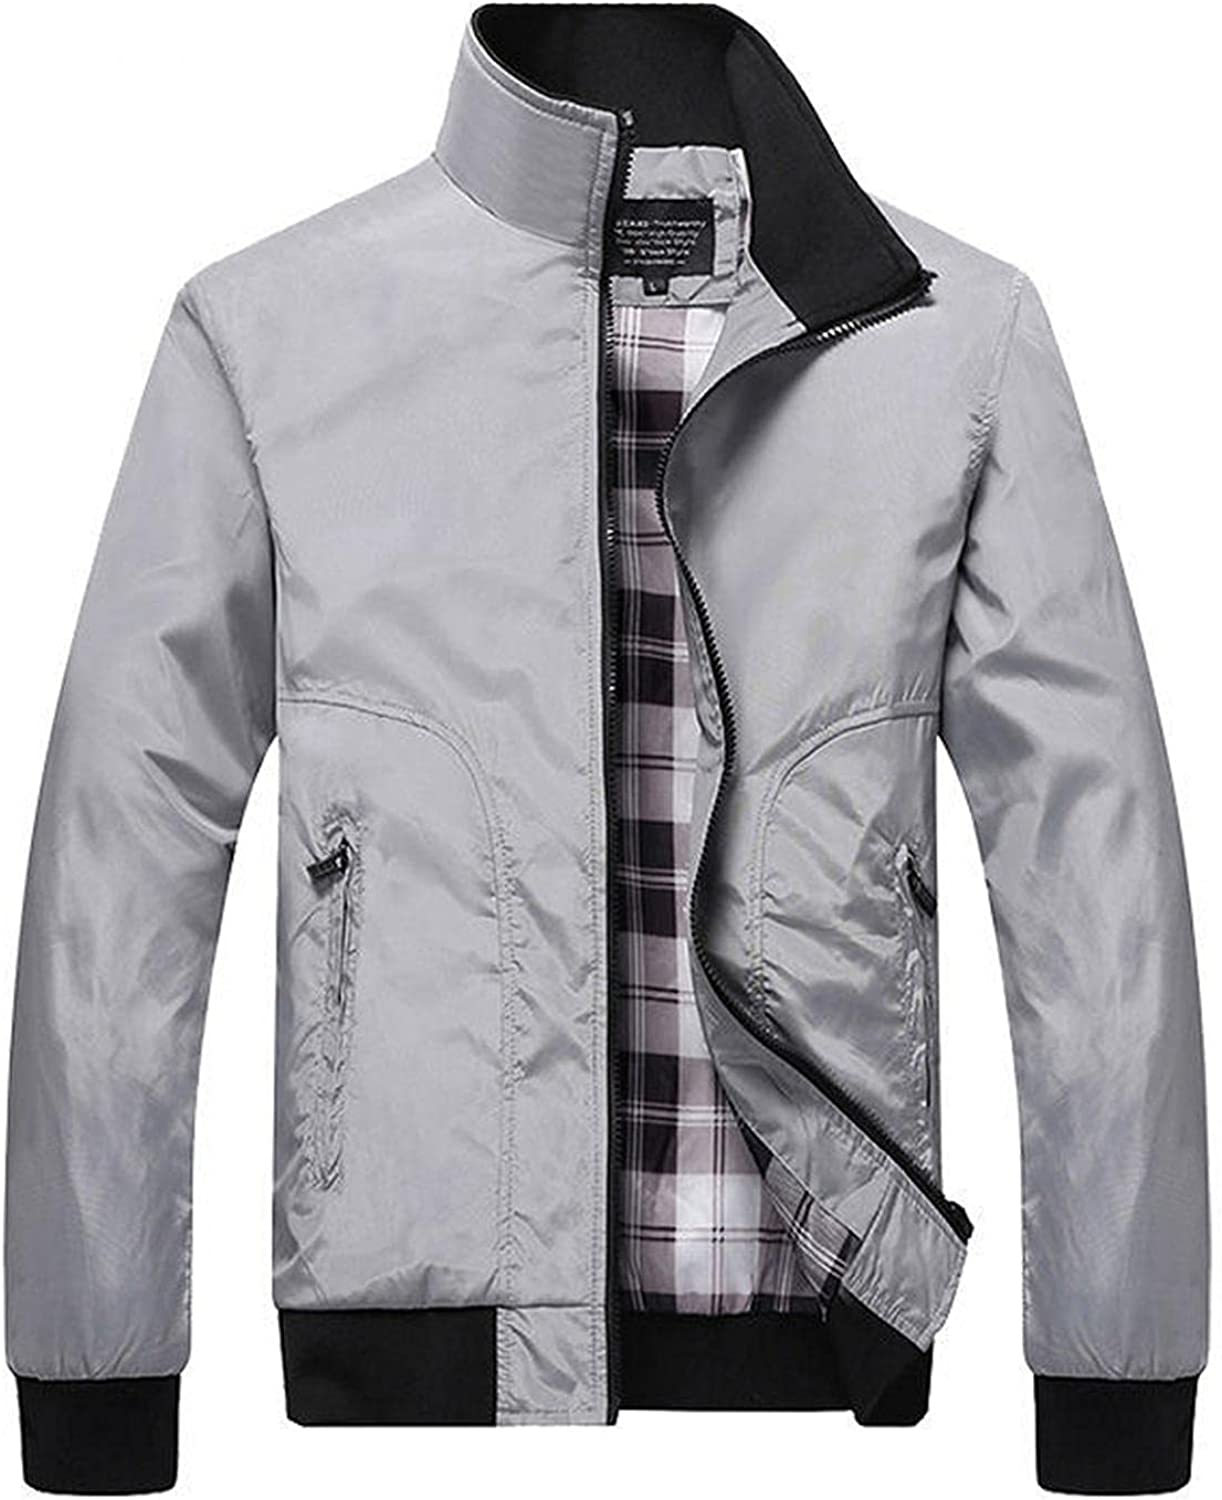 LEIYAN Mens Casual Long Sleeve Jackets Zip Up Stand Collar Thick Warm Open Front Cardigan Coat Anorak with Zipper Pockets